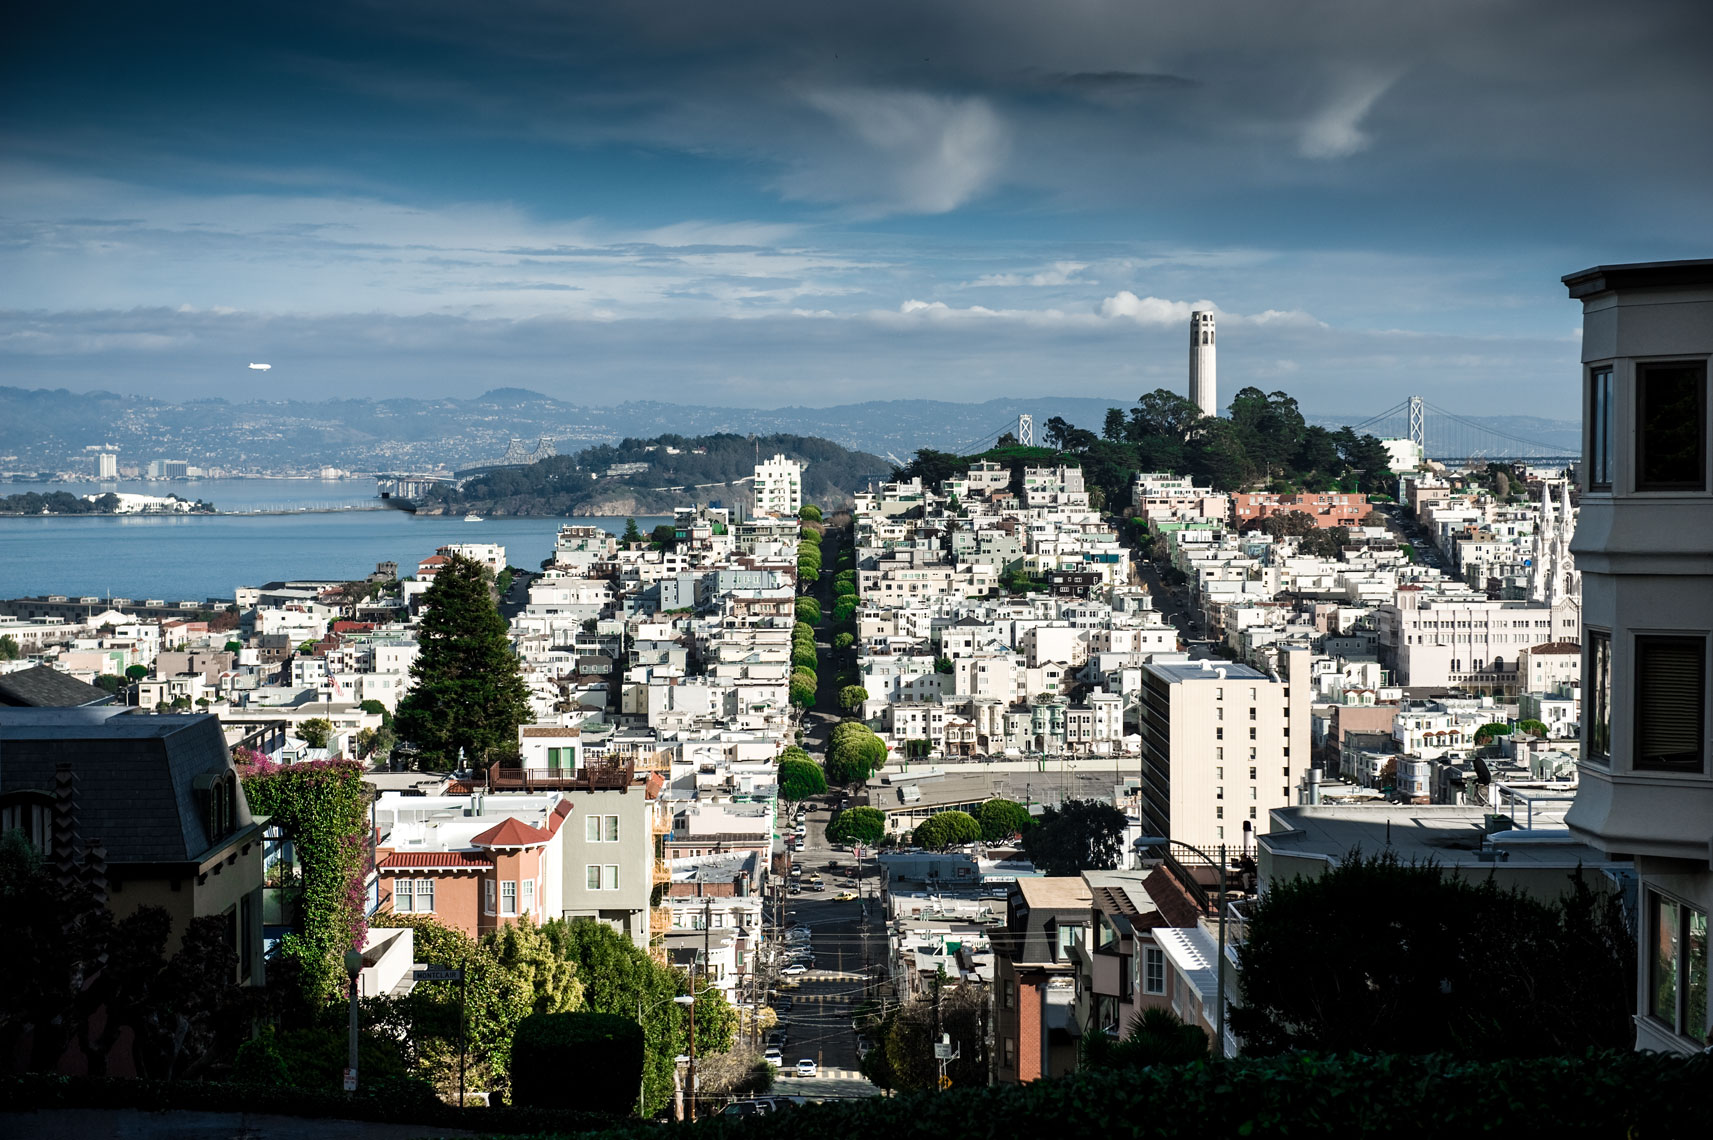 Coit Tower, San Francisco, by California landscape photographer Mike Morgan.